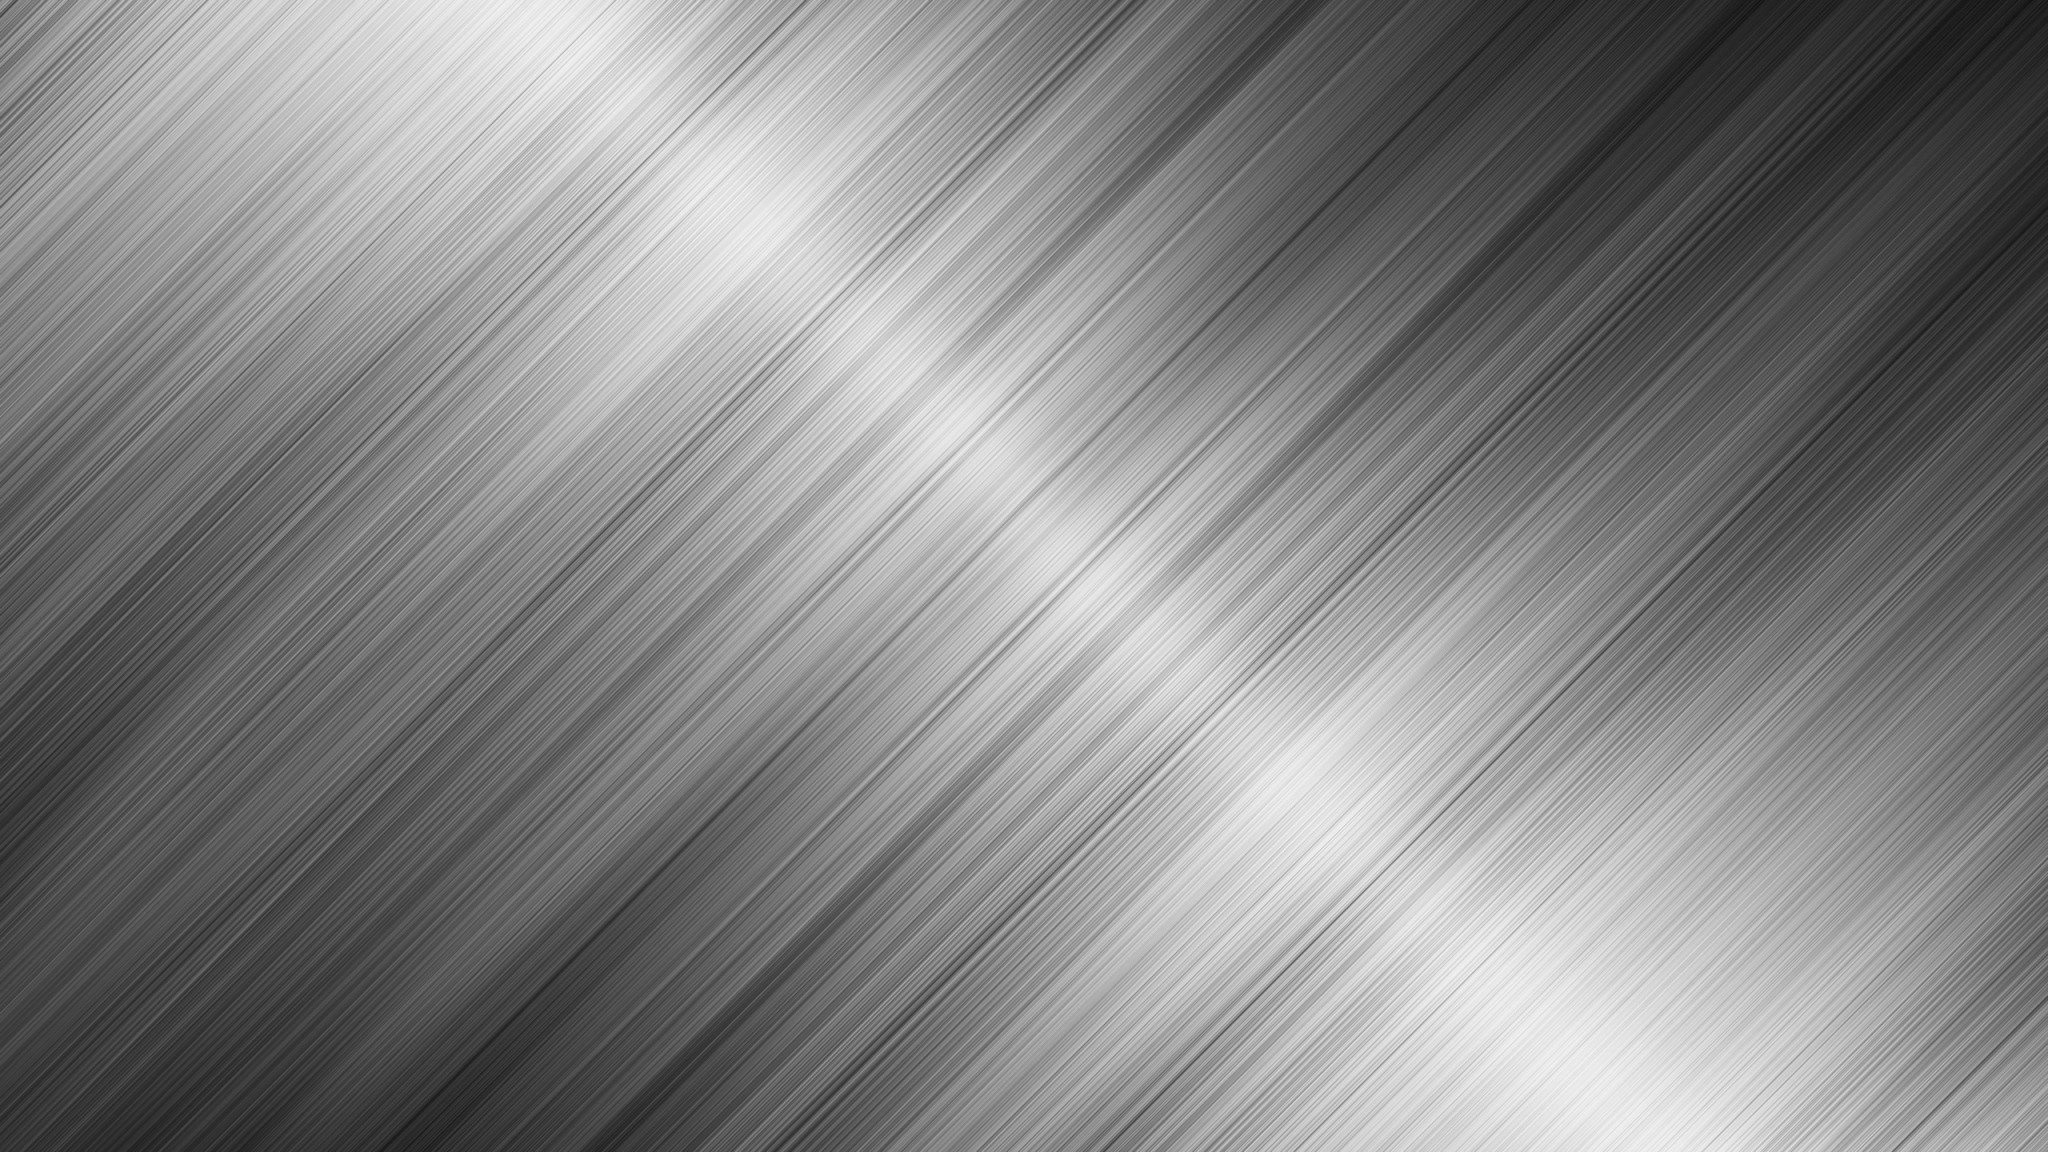 Preview wallpaper metal, lines, stripes, light, shiny, silver 2048×1152